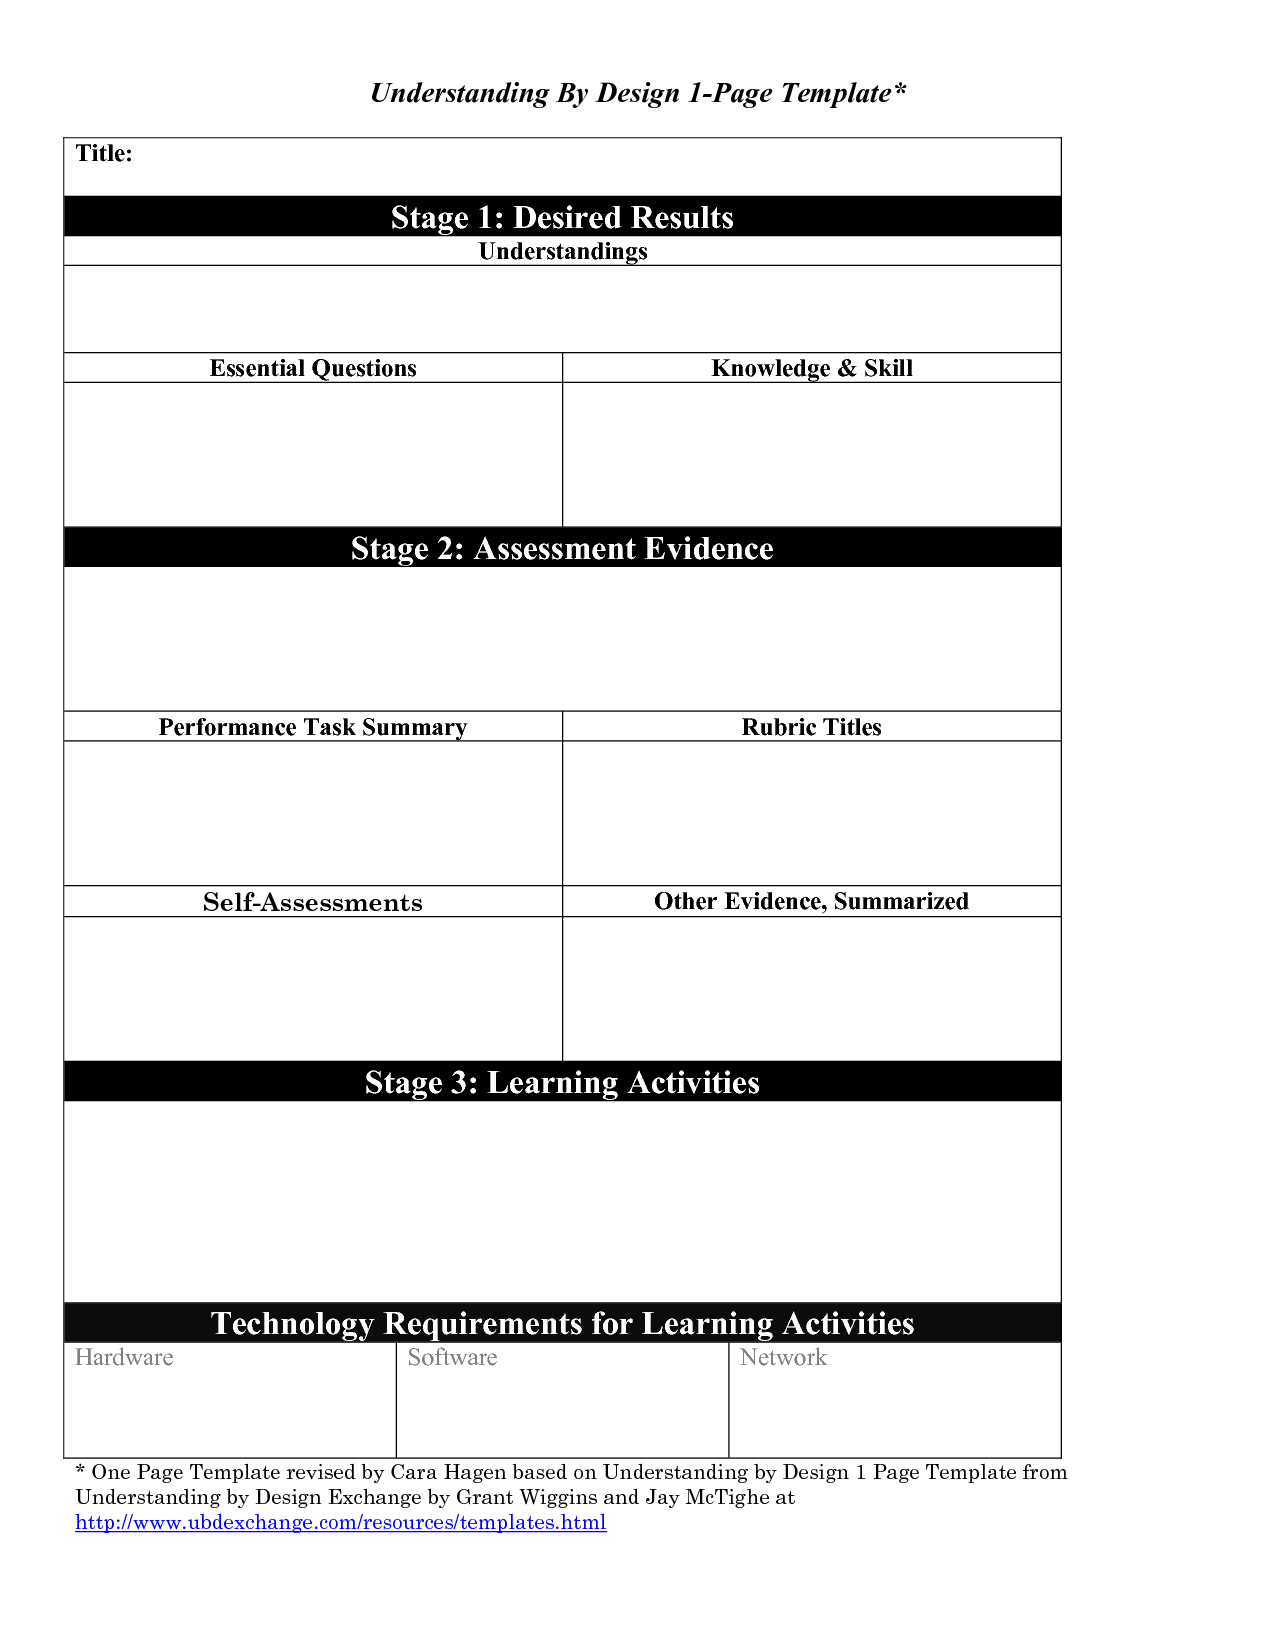 Understanding By Design  Page Template Doc Understanding By